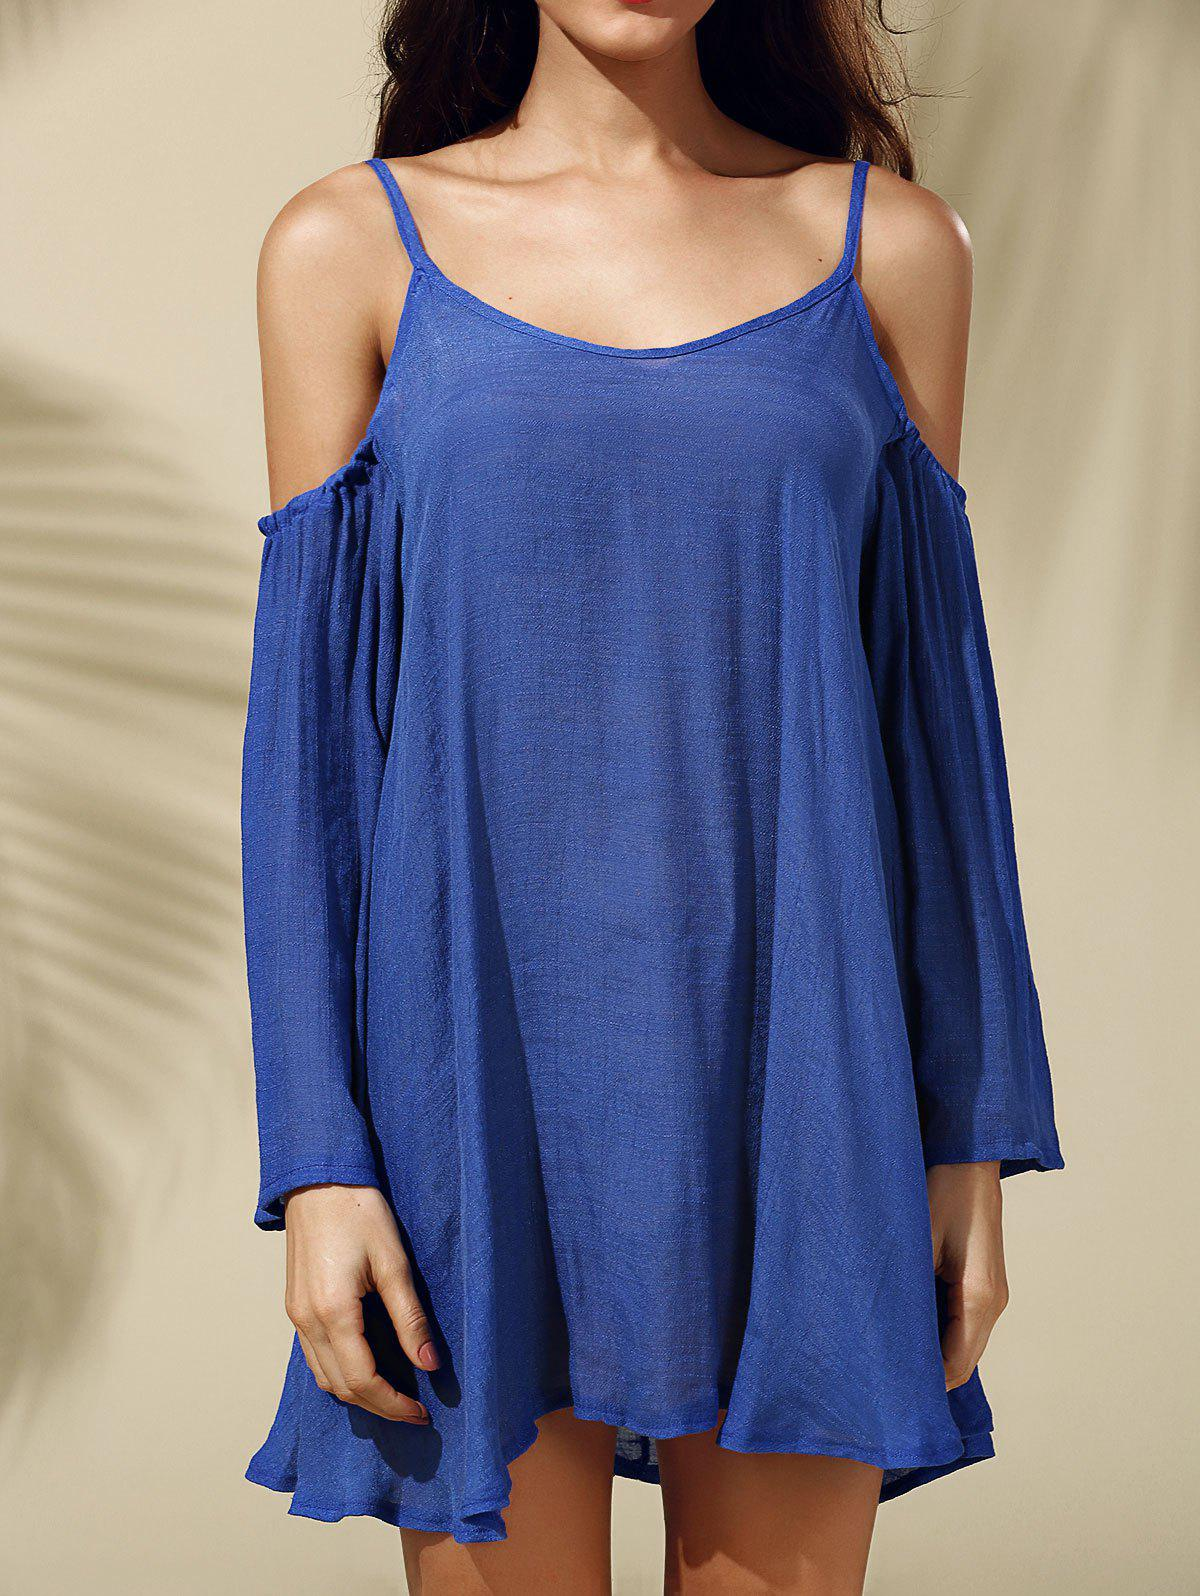 Stylish Women's Strappy Cold Shoulder Solid Color Dress - BLUE S